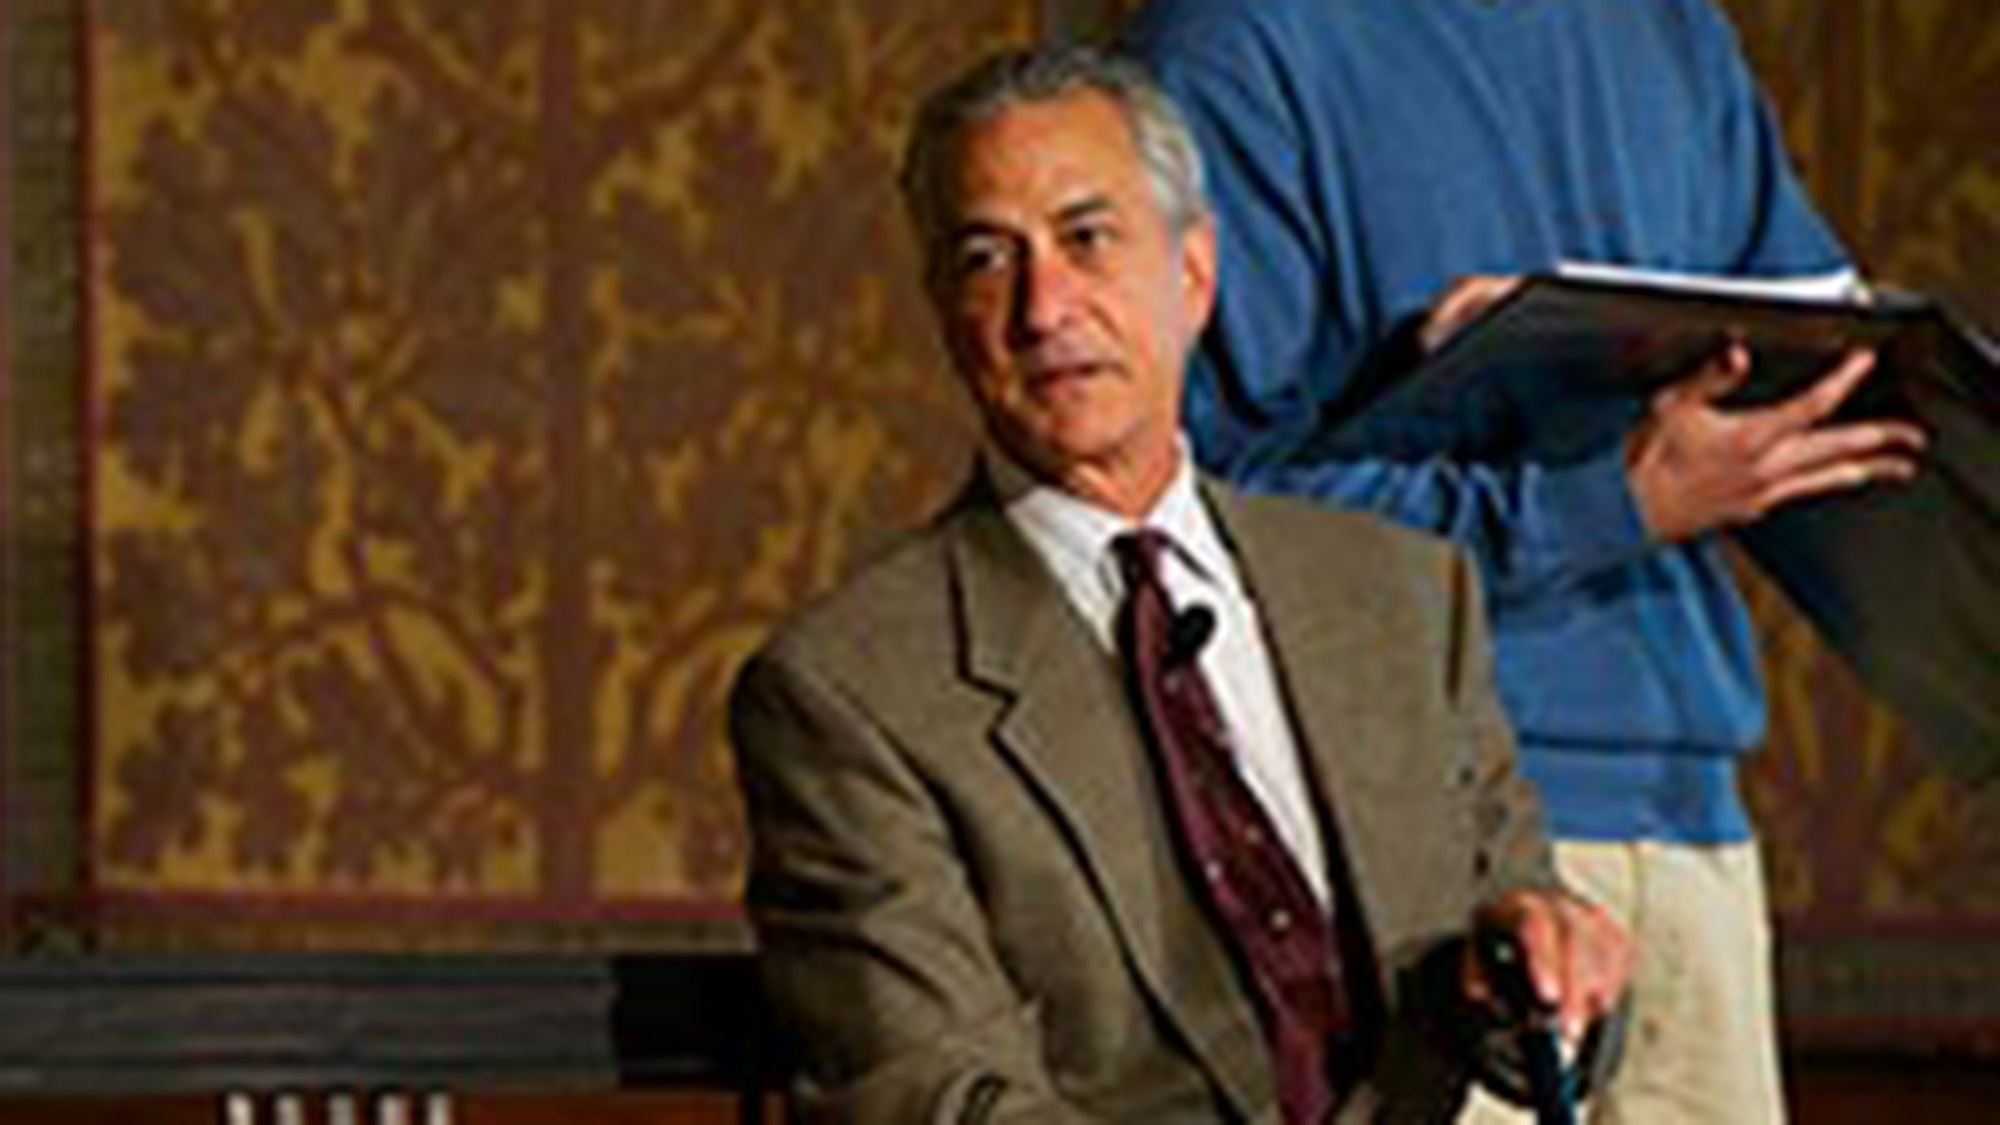 David Strathairn acting as Jan Karski on stage sitting on a bench with student actor behind him